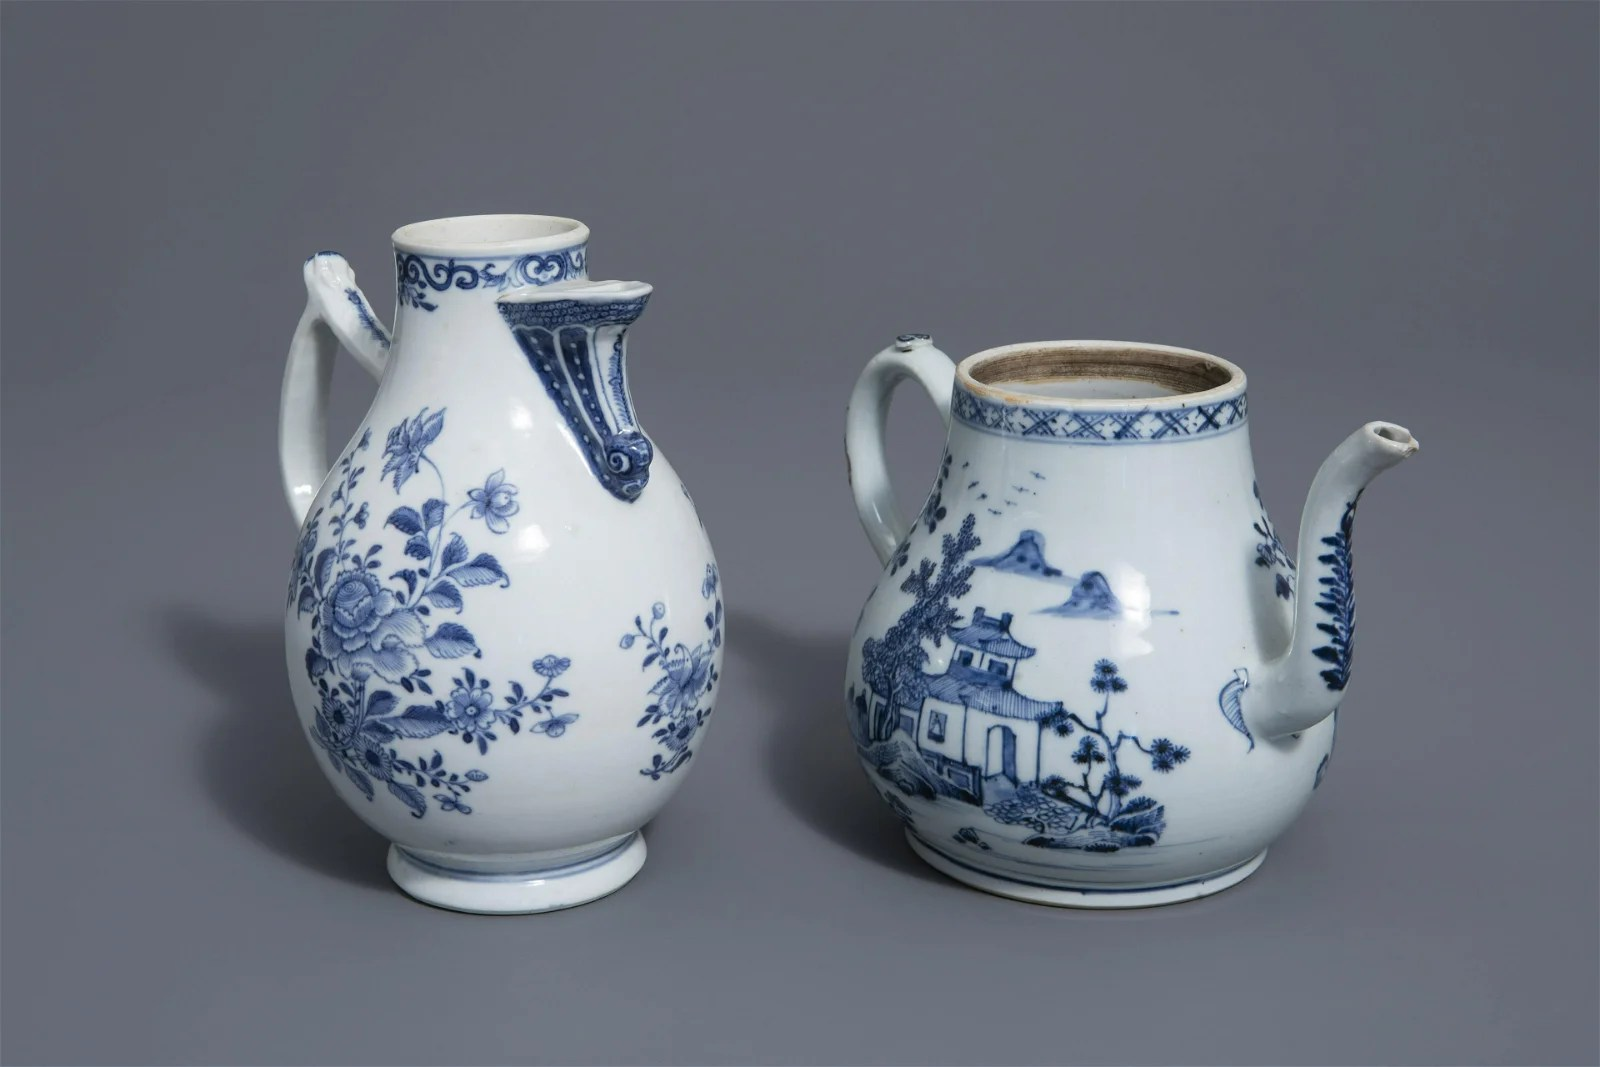 A large Chinese blue and white teapot and a water jug,